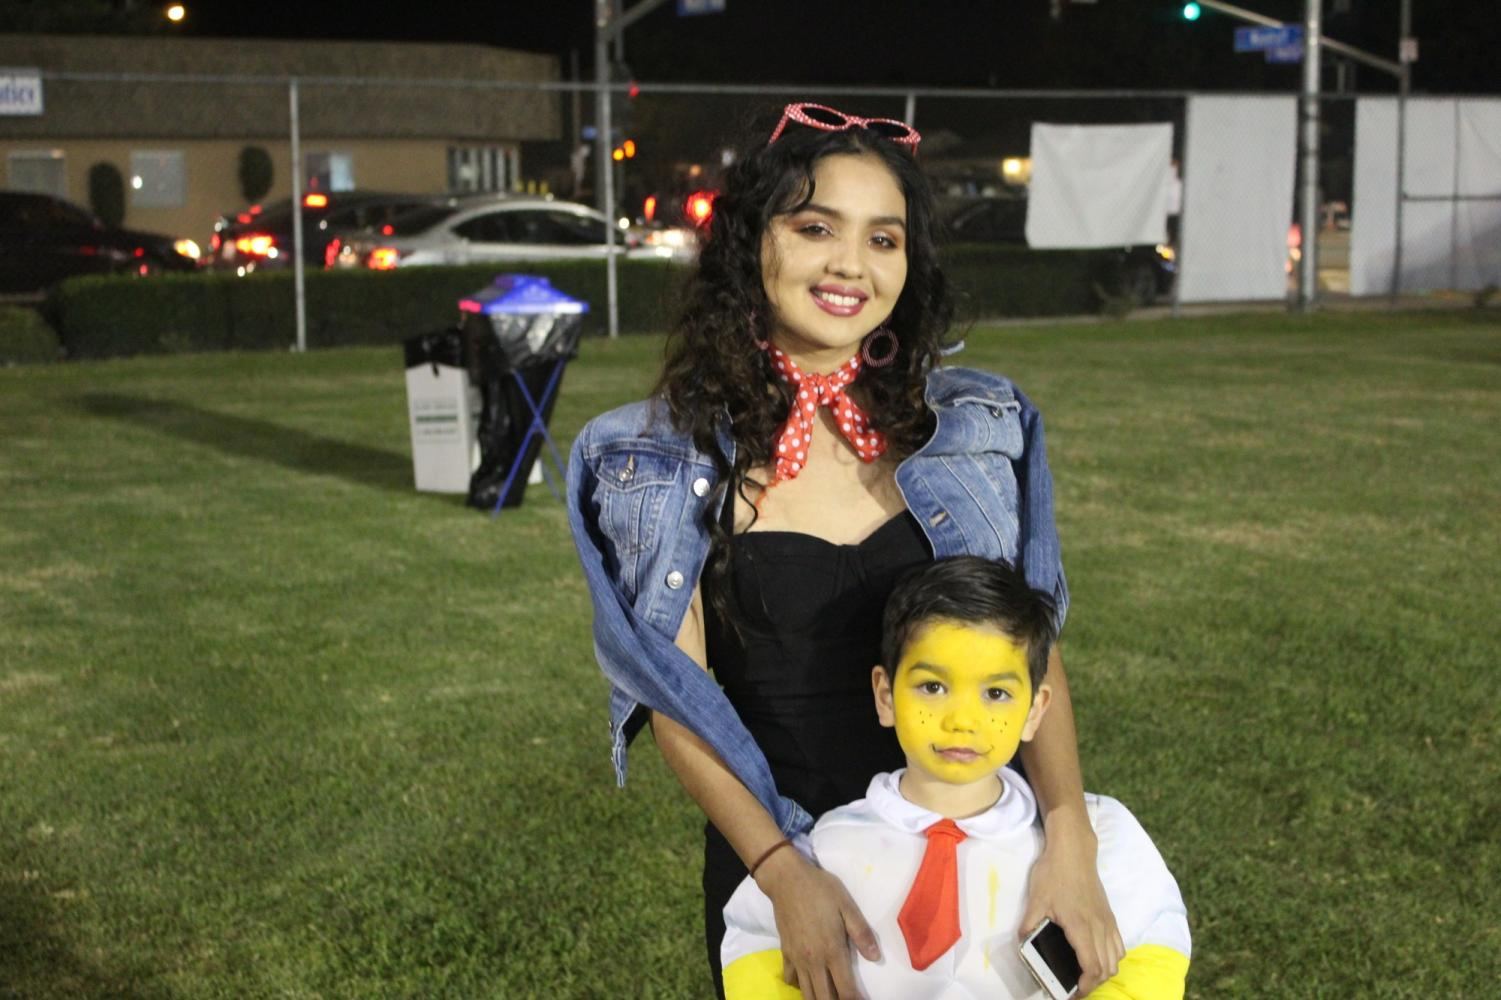 Tania Reyes and her son Sebastian Orrantia attend to the Pumpkin Patch Festival for their second consecutive year. This event was celebrated on Oct 31.